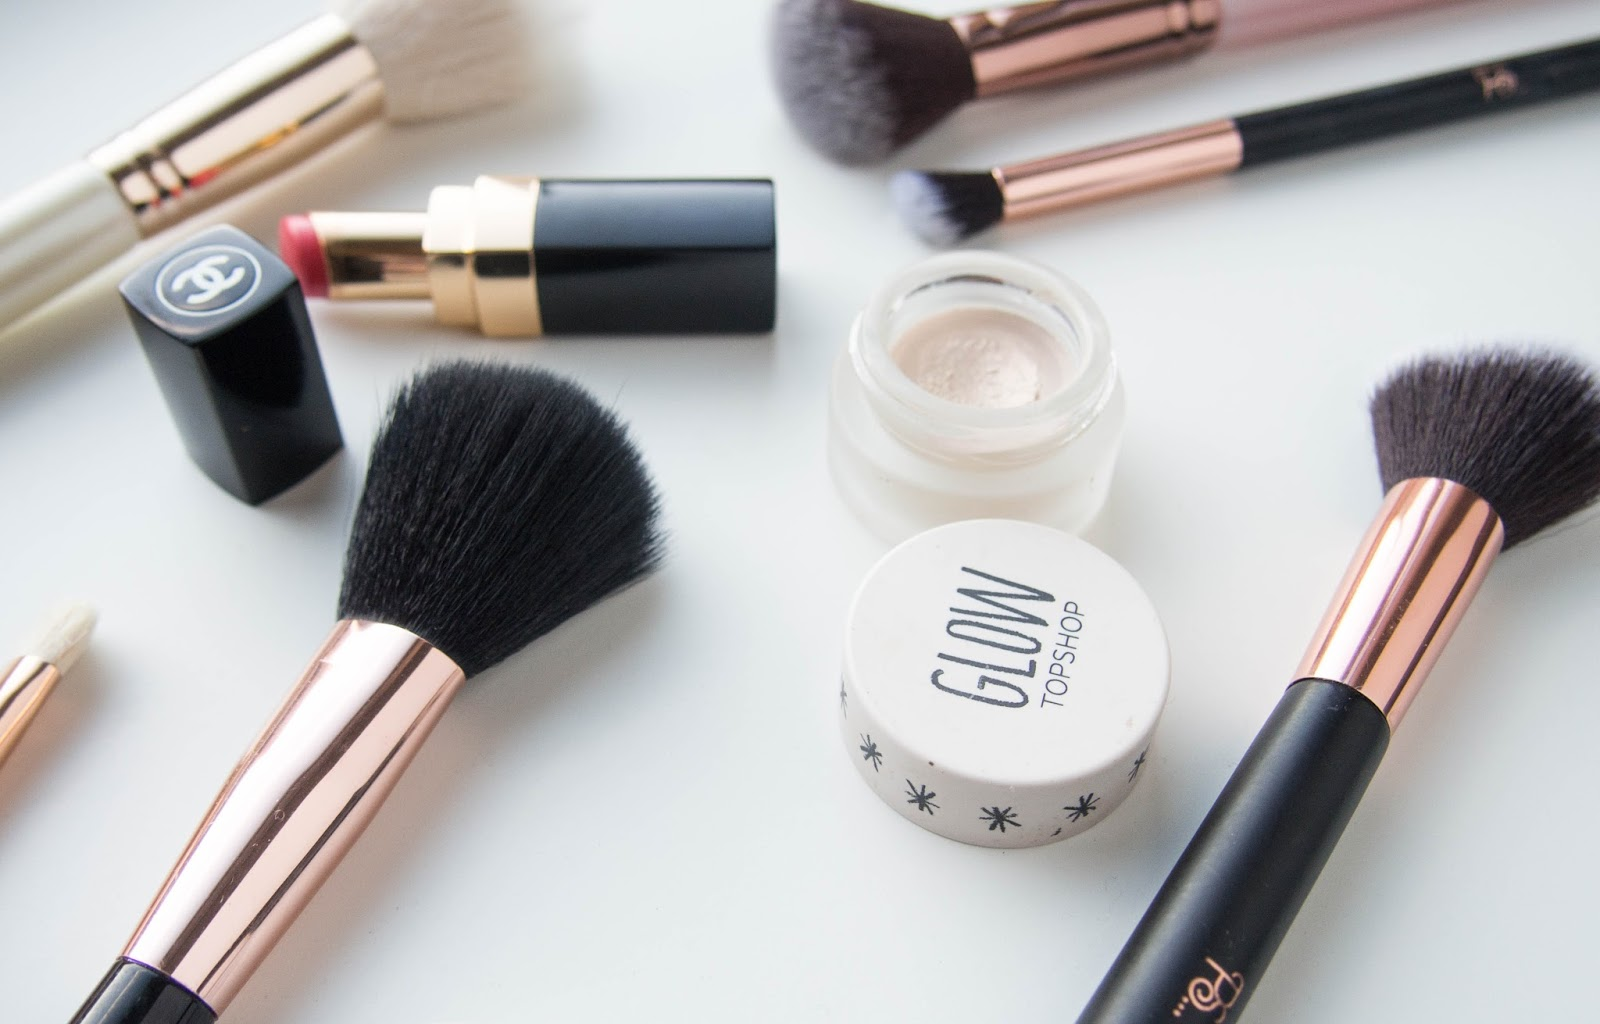 Makeup Brushes, Chanel Lipstick, Beauty Blogs, Beauty, Derbyshire Blog, Belper Blog, Katie Writes,